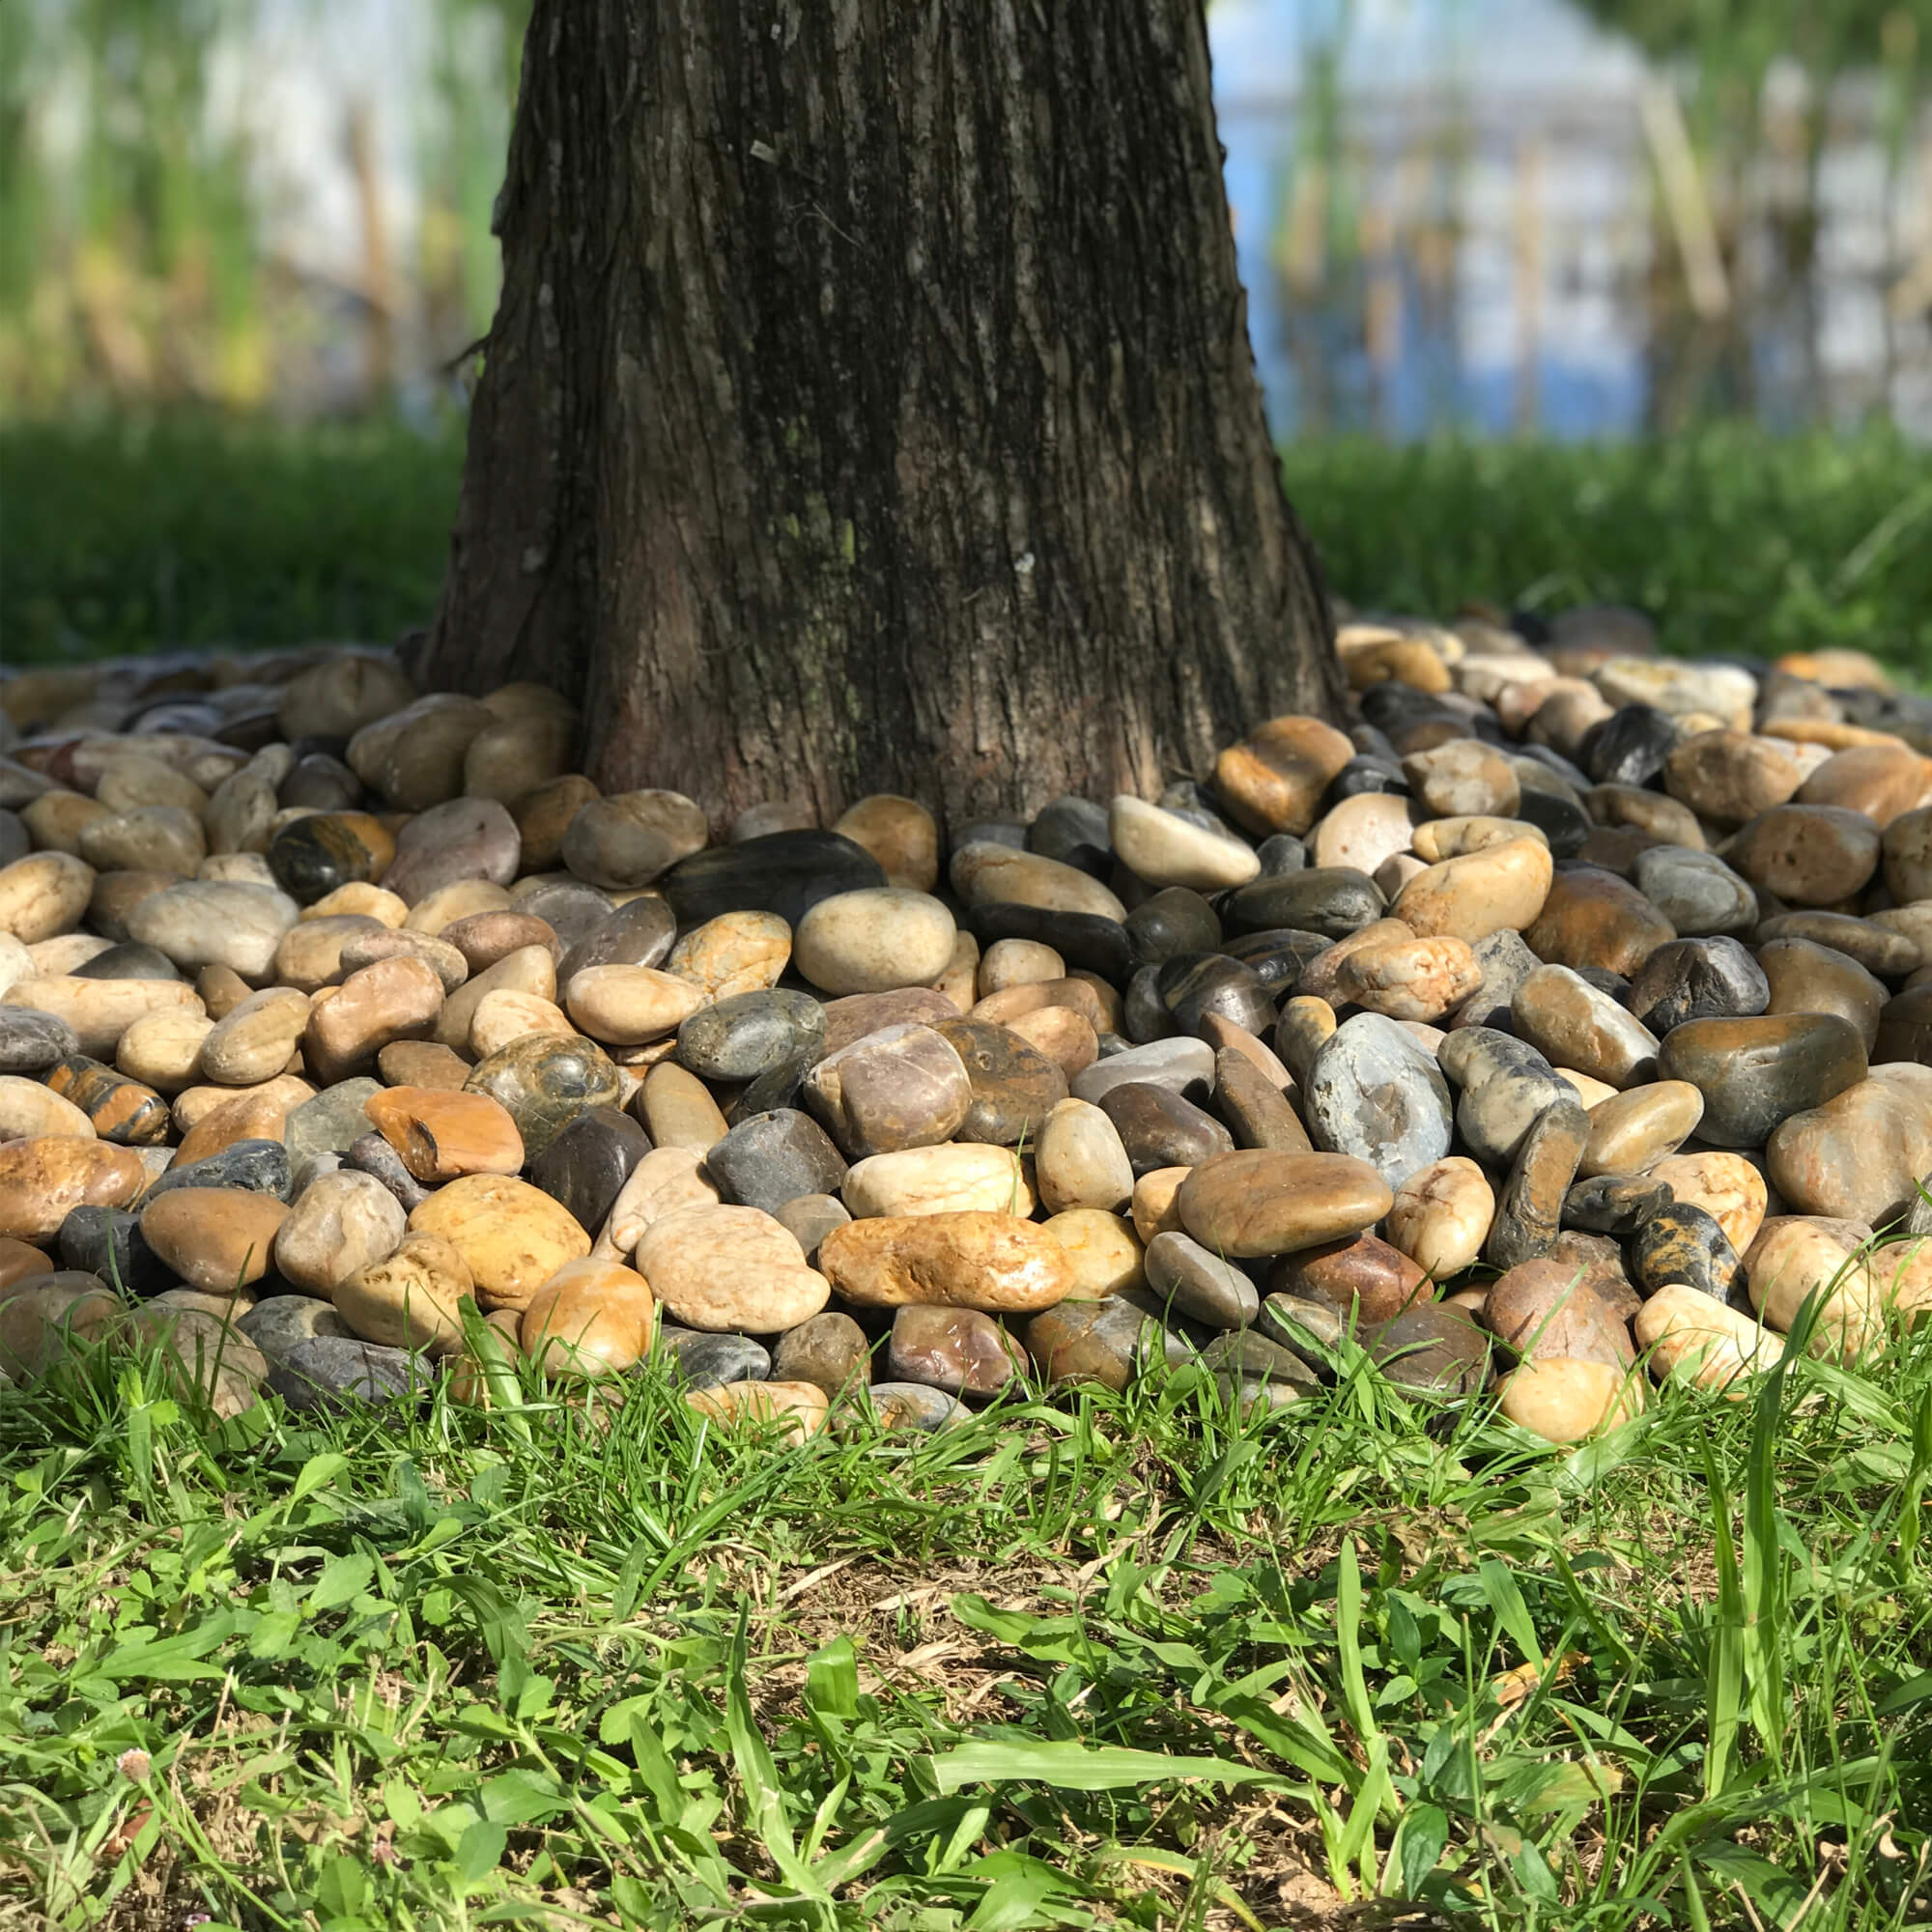 Pebbles layered around a tree trunk